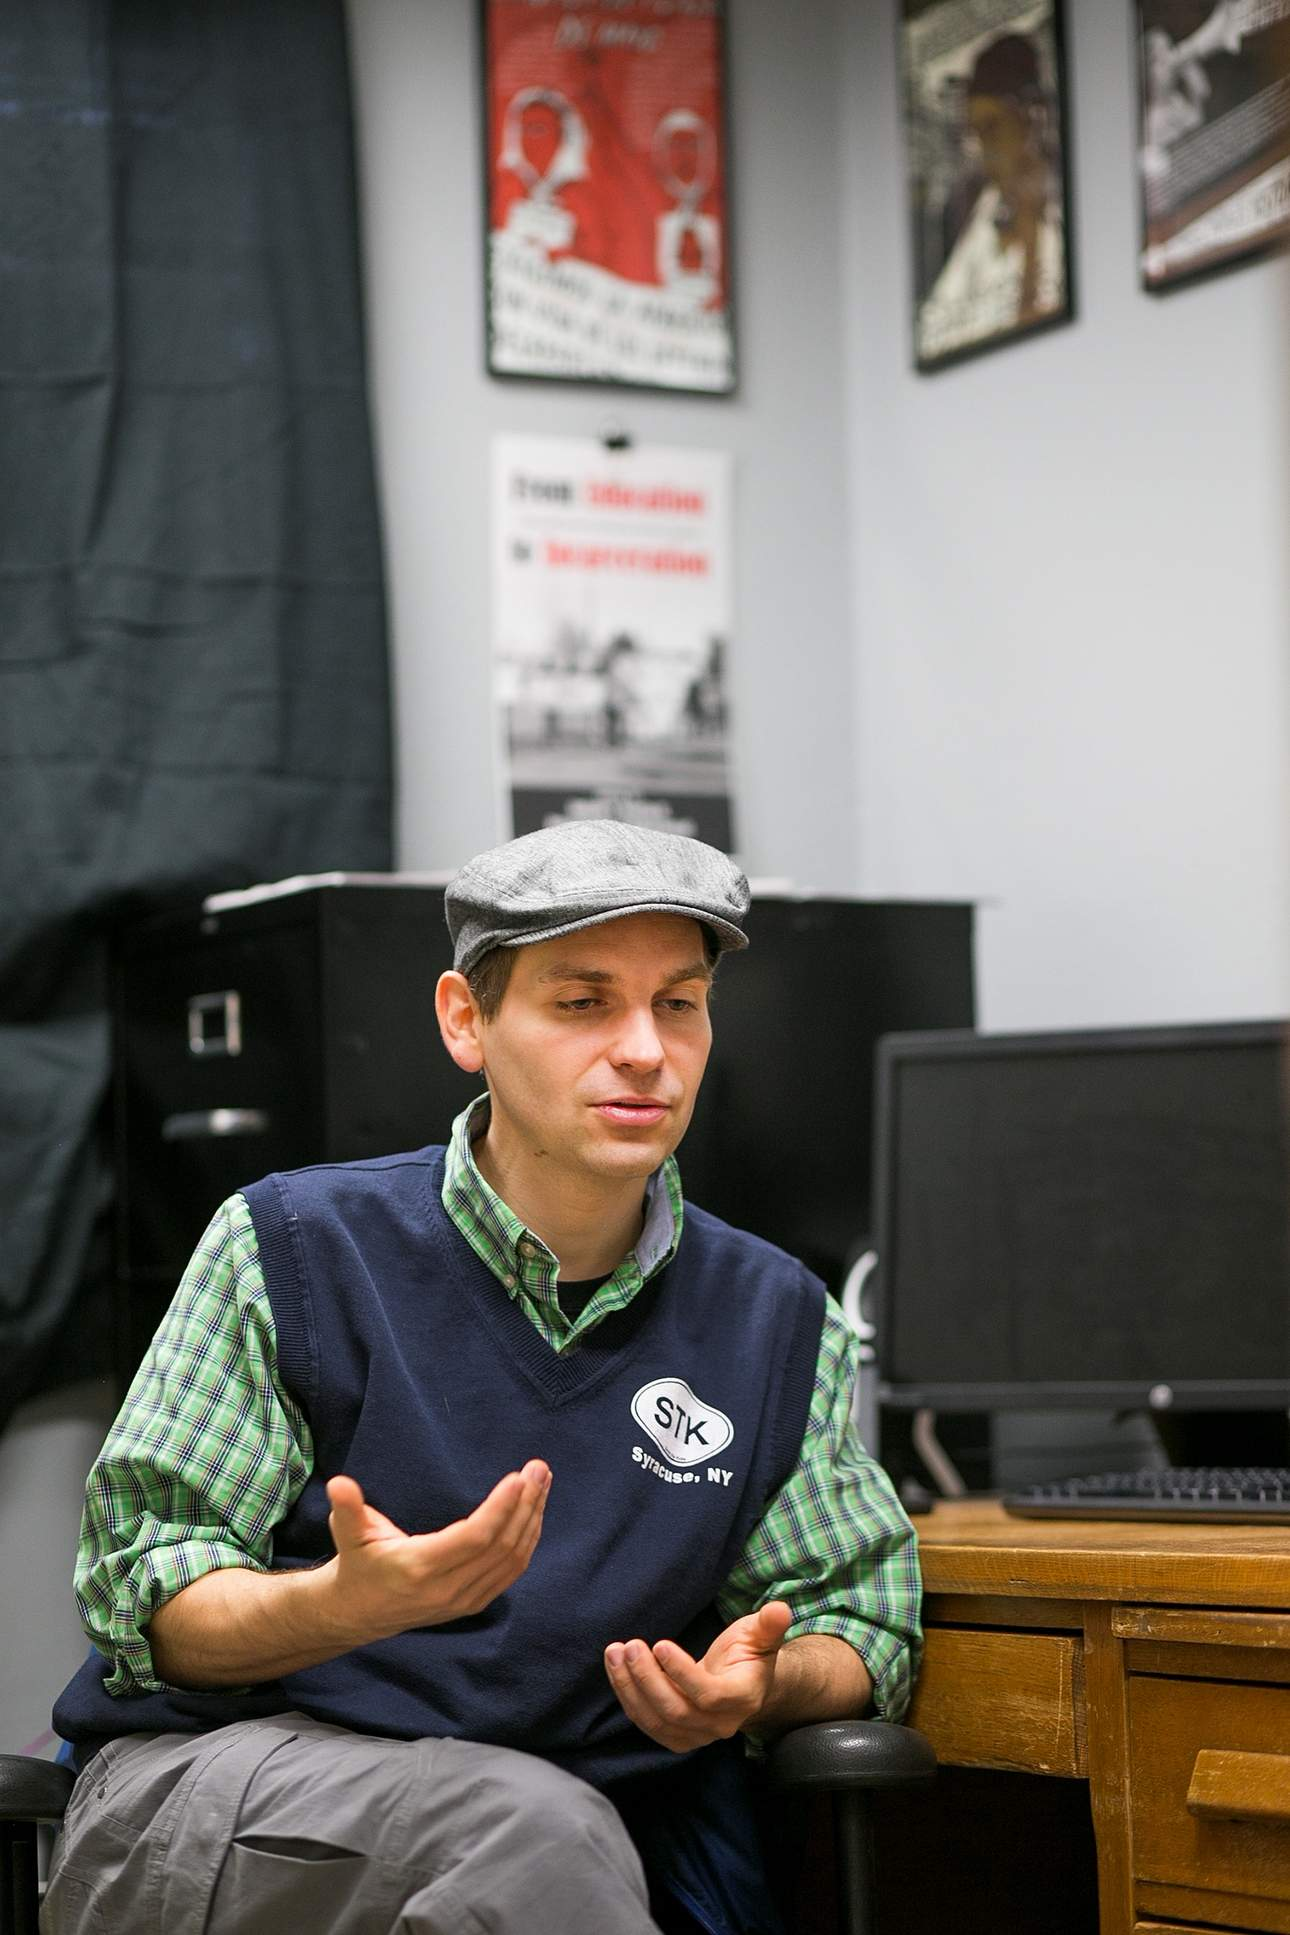 activism blends academics for fort lewis college professor assistant professor anthony nocella speaks about his activism friday in his office i want to be a model of what efficient and effective activism looks